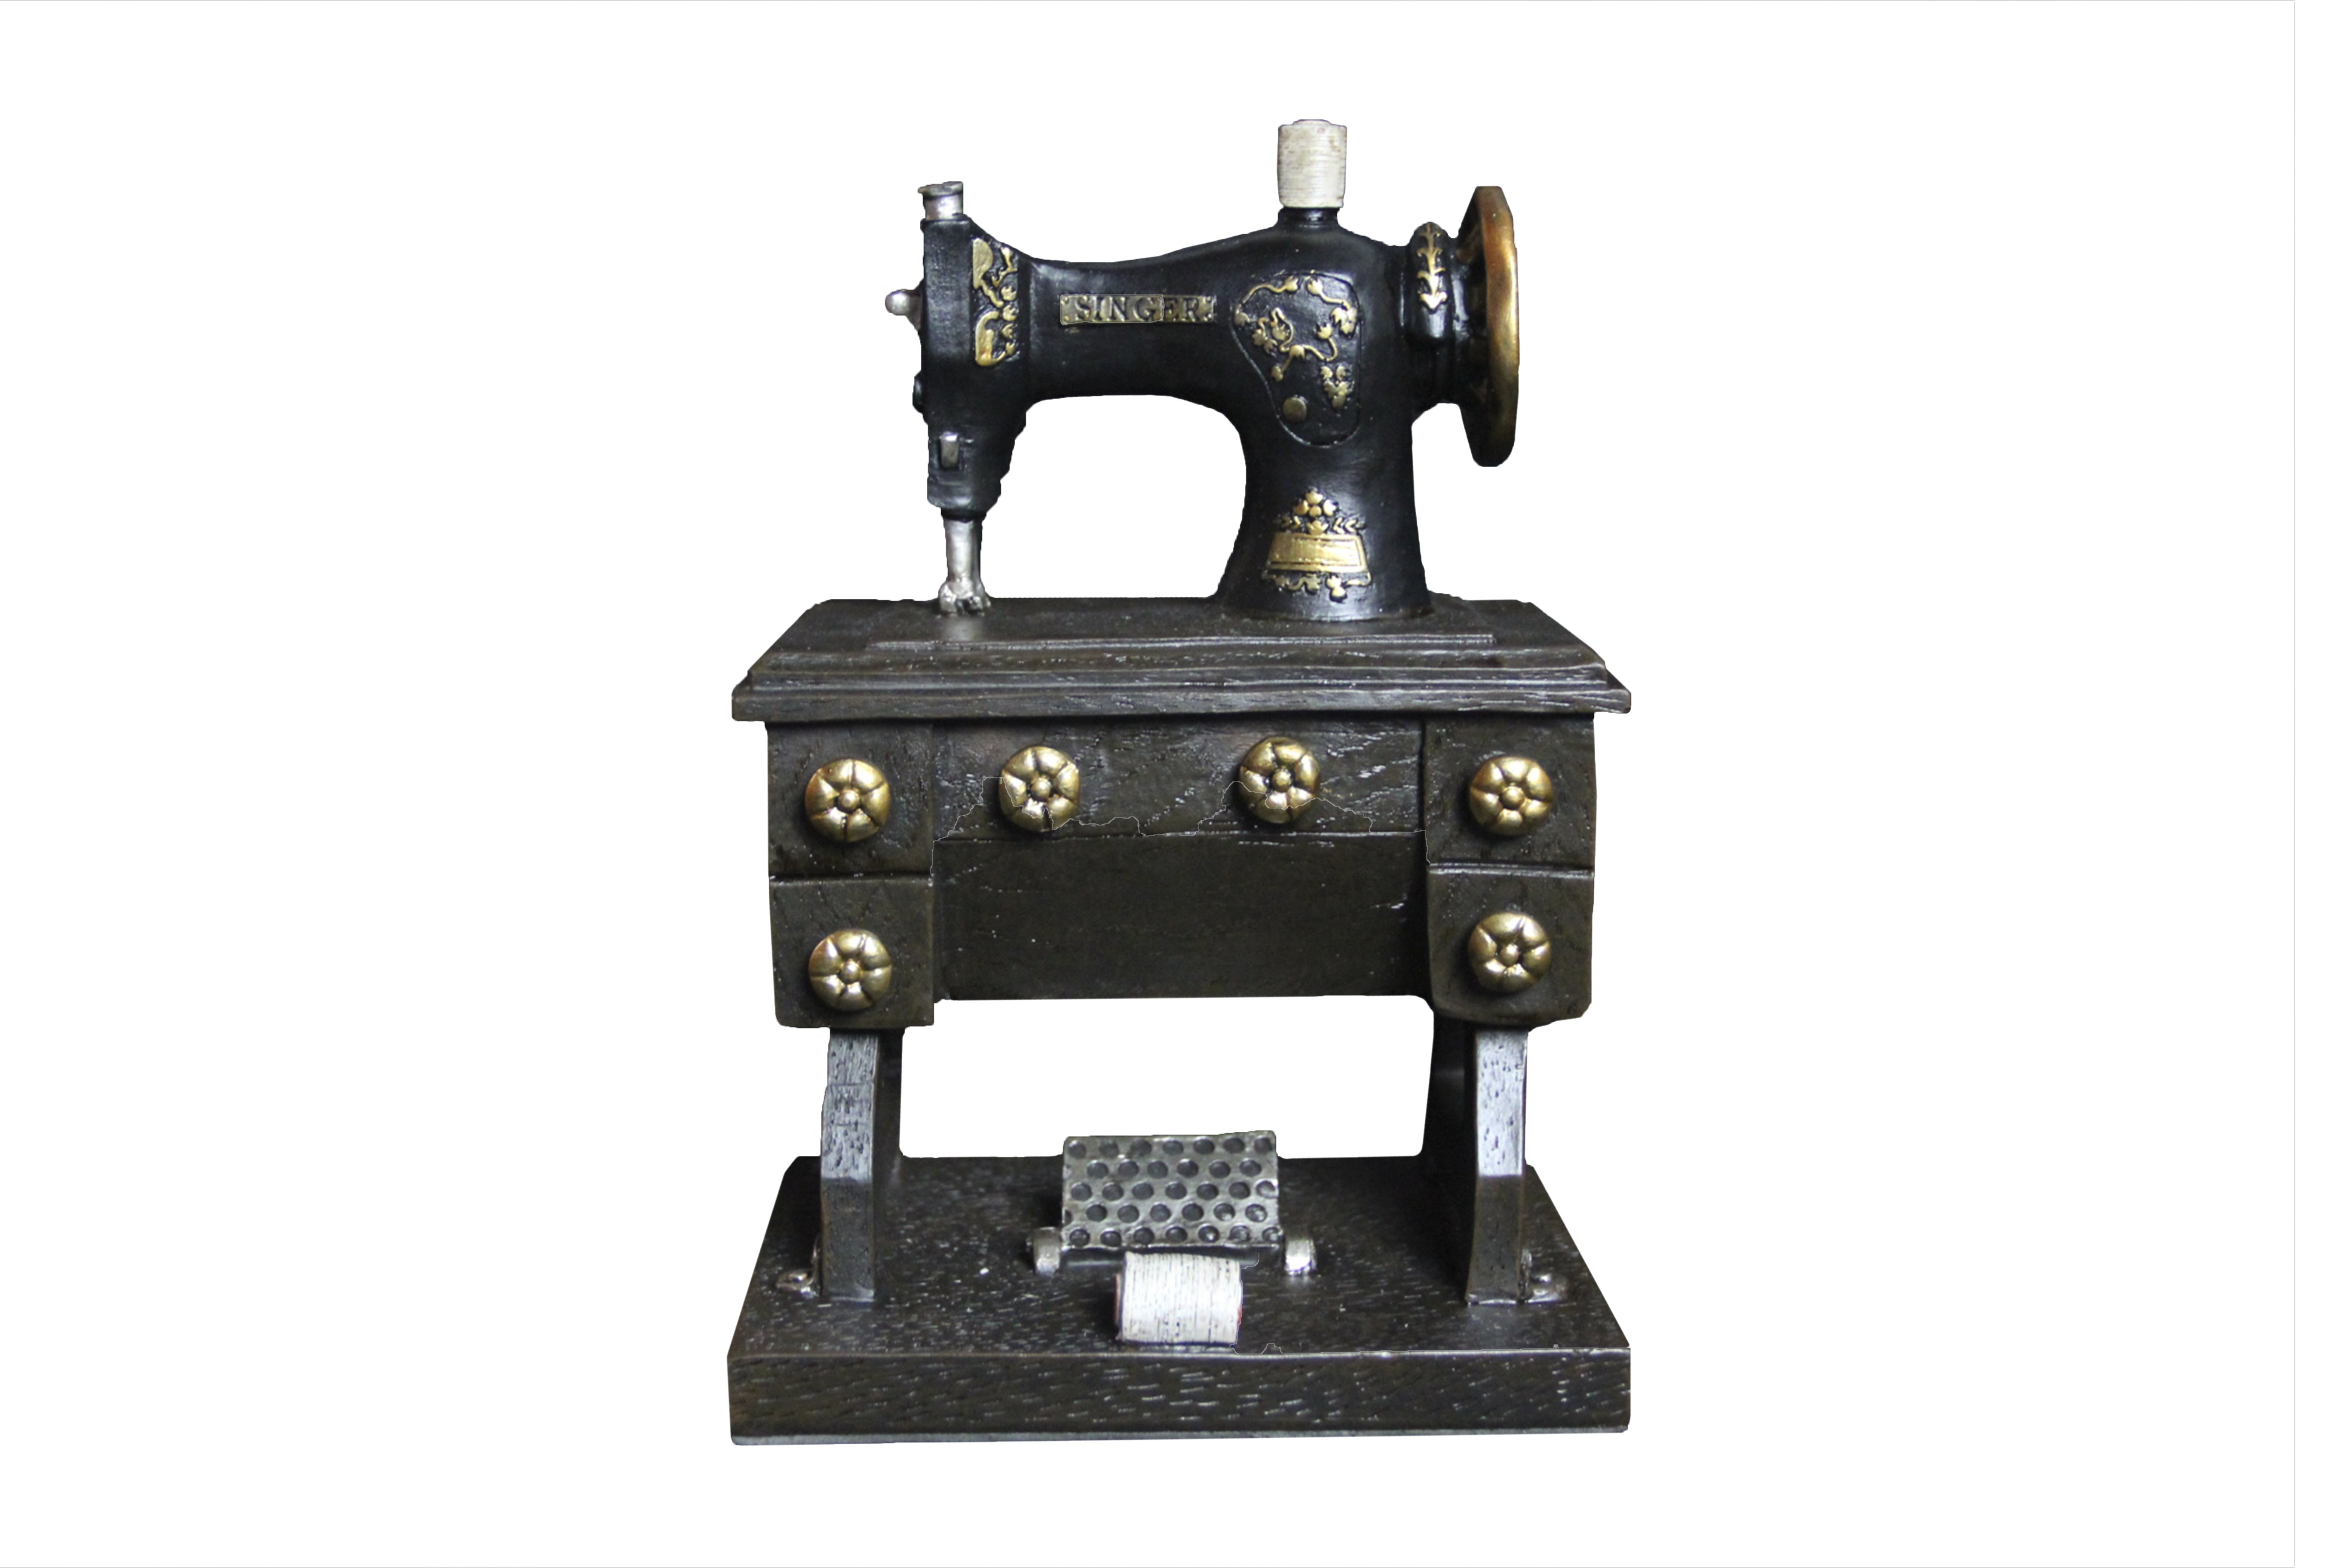 Oh! Trendy Vintage Sewing Machine Adult Piggy Bank | Decorative Sewing Machine Coin Holder Home Decor by UC Global Trade Inc.